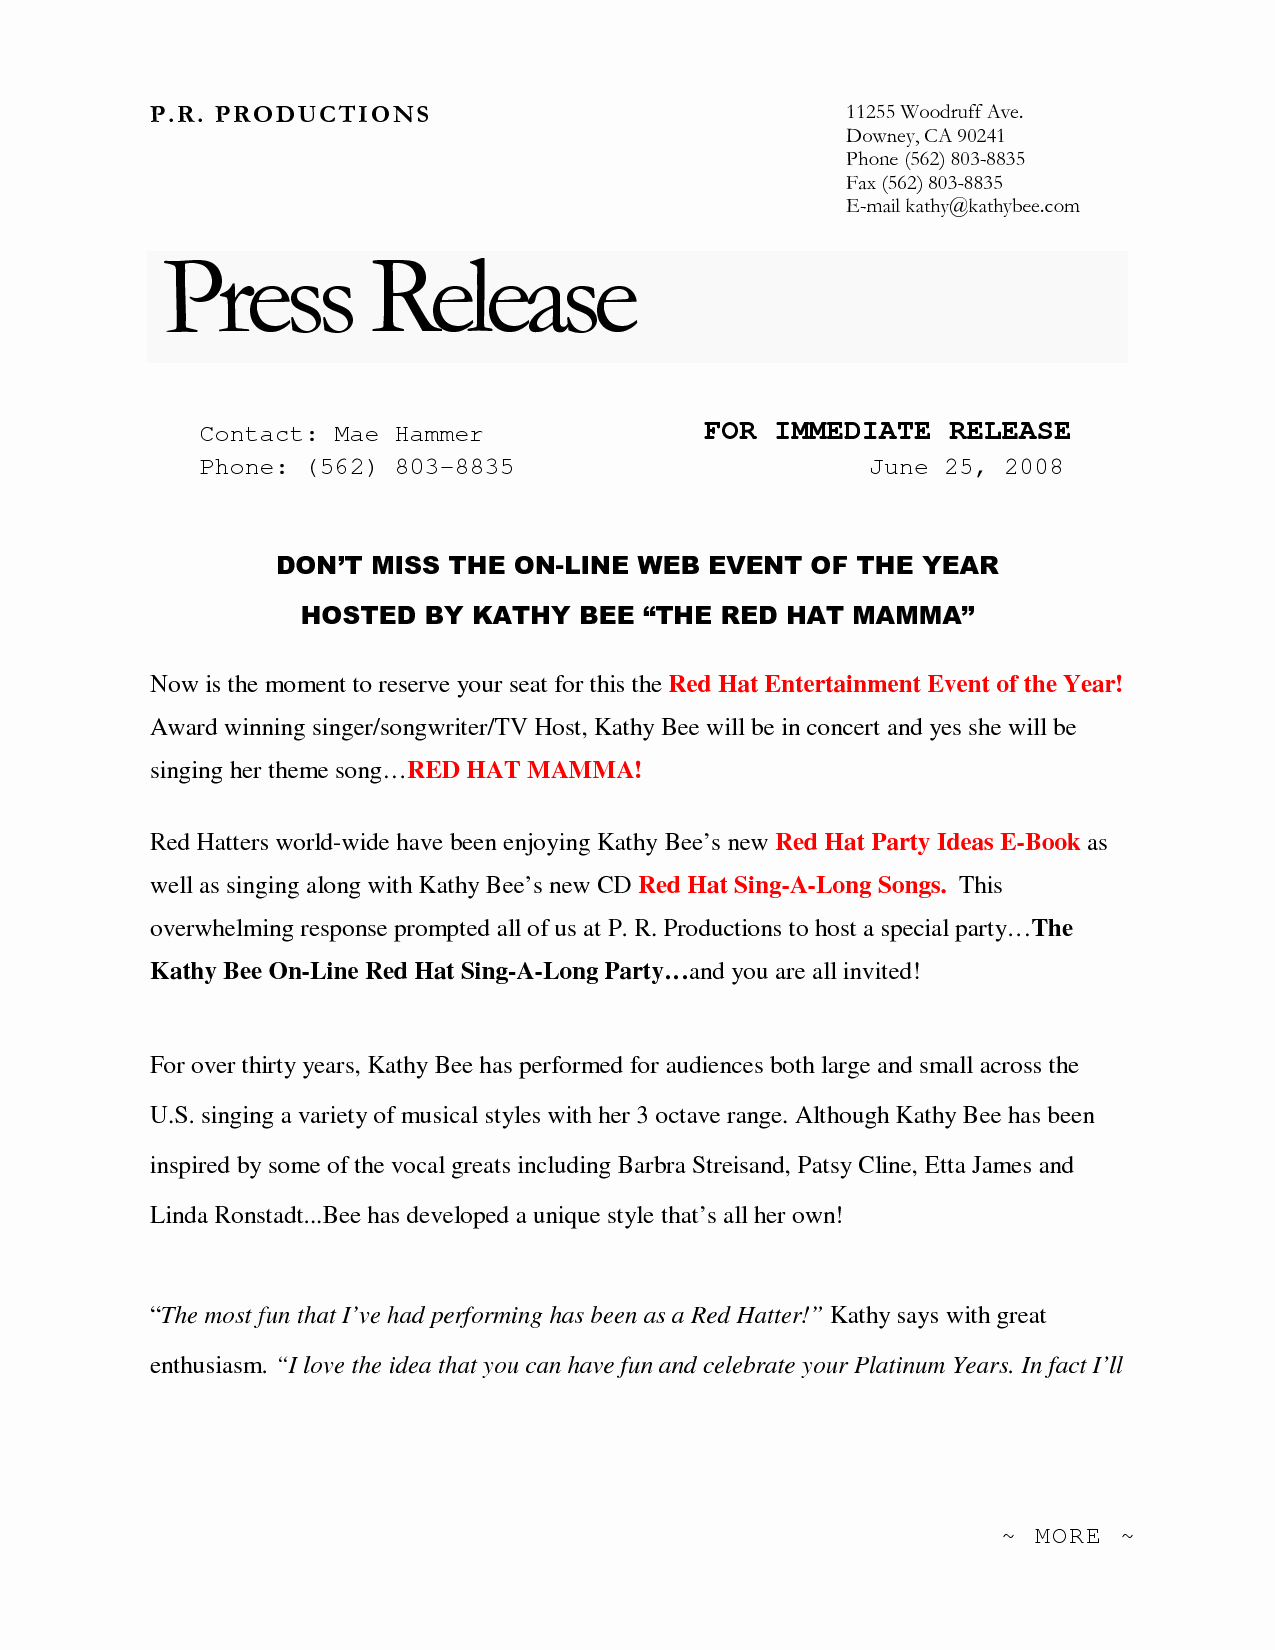 New Product Press Release Sample Awesome 10 Best Of New Website Press Release Example